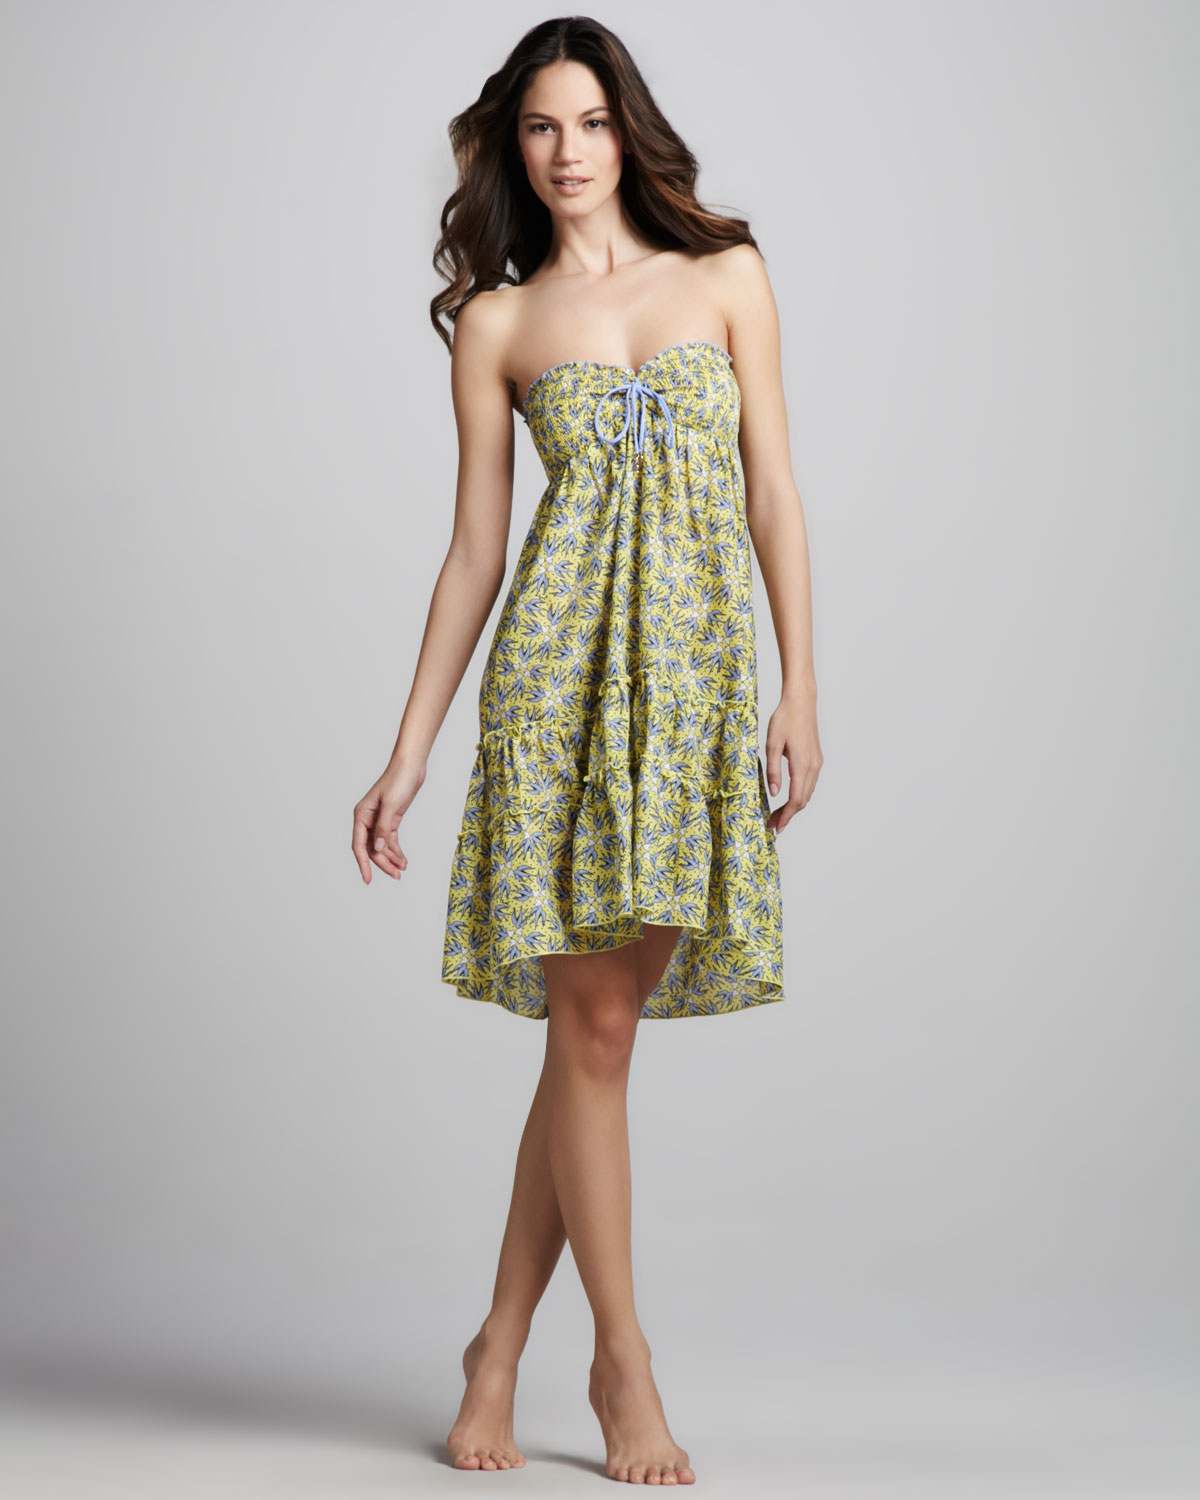 Lyst - Juicy Couture Love Birds Strapless Coverup Dress in Green